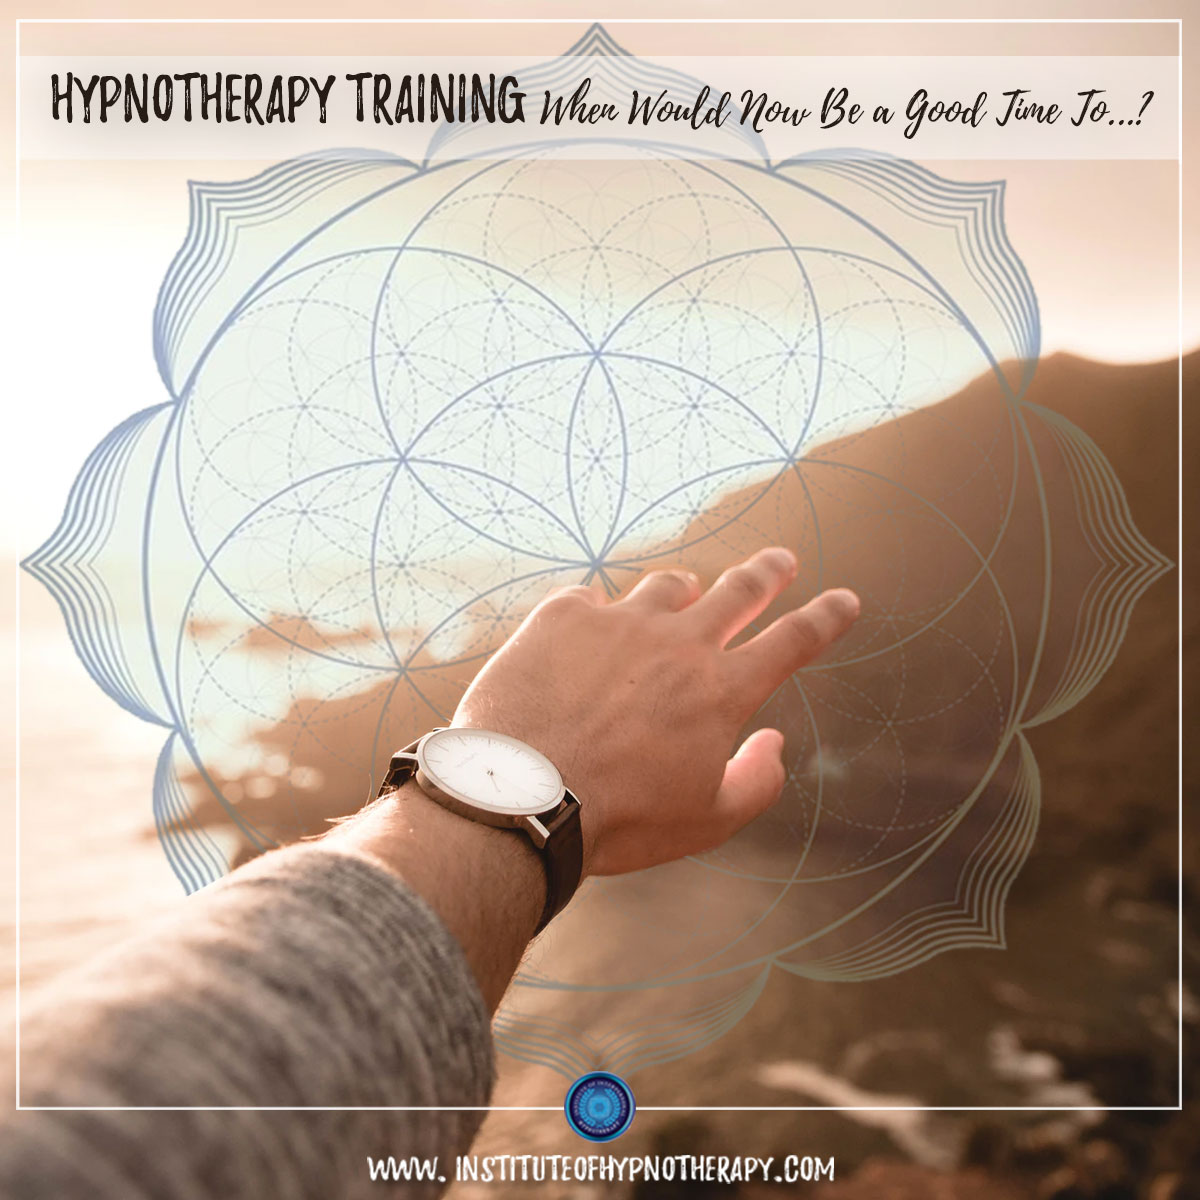 Hypnotherapy – When Would Now Be a Good Time To …?